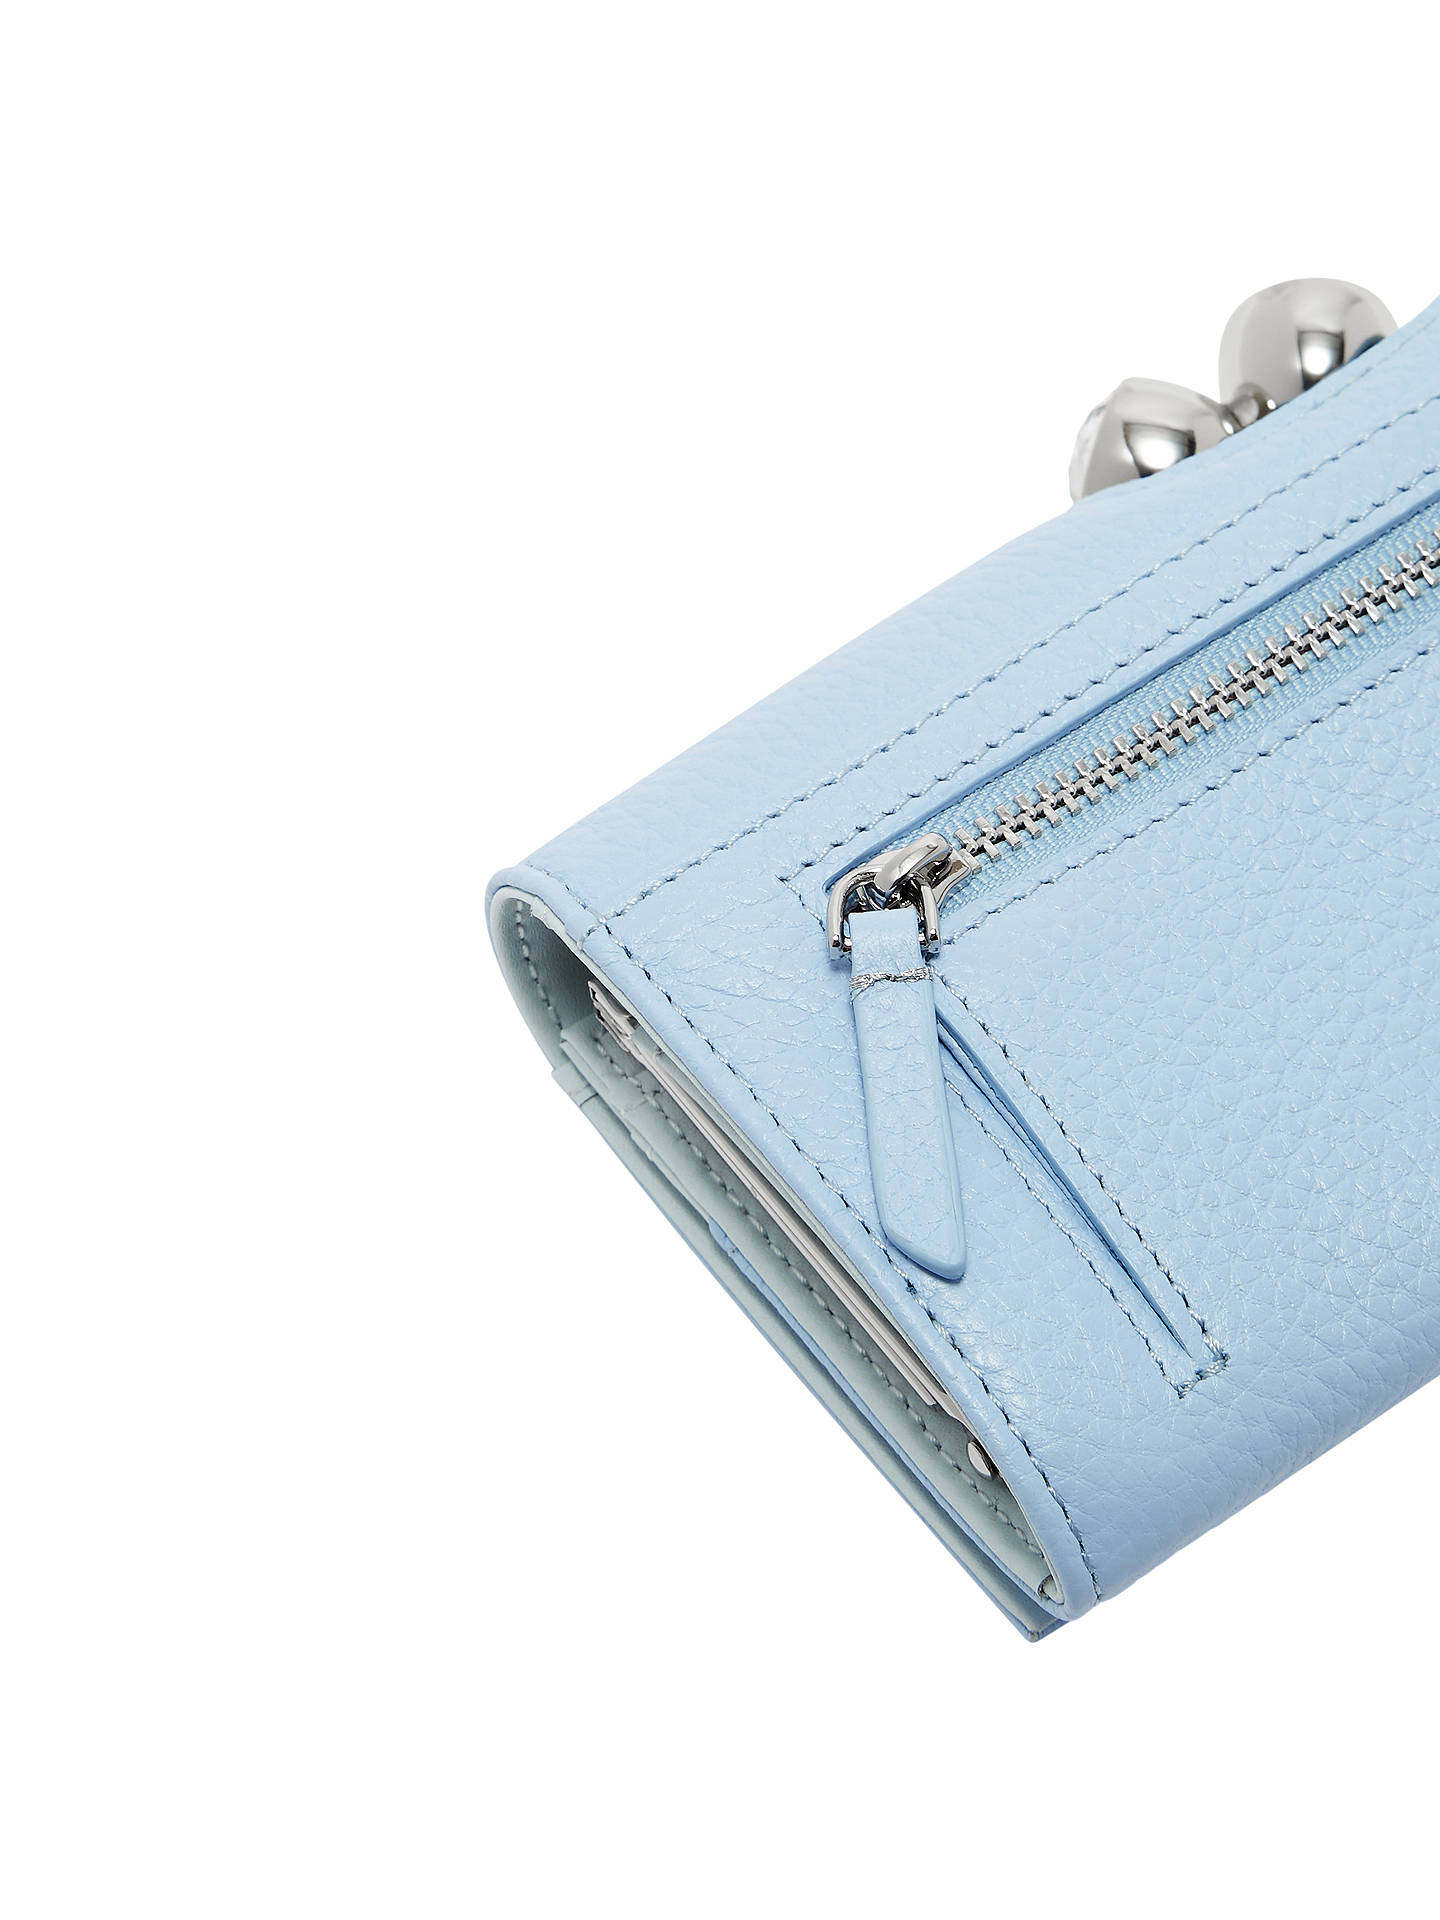 efe561d669 ... Buy Ted Baker Muscovy Leather Matinee Purse, Pale Blue Online at  johnlewis.com